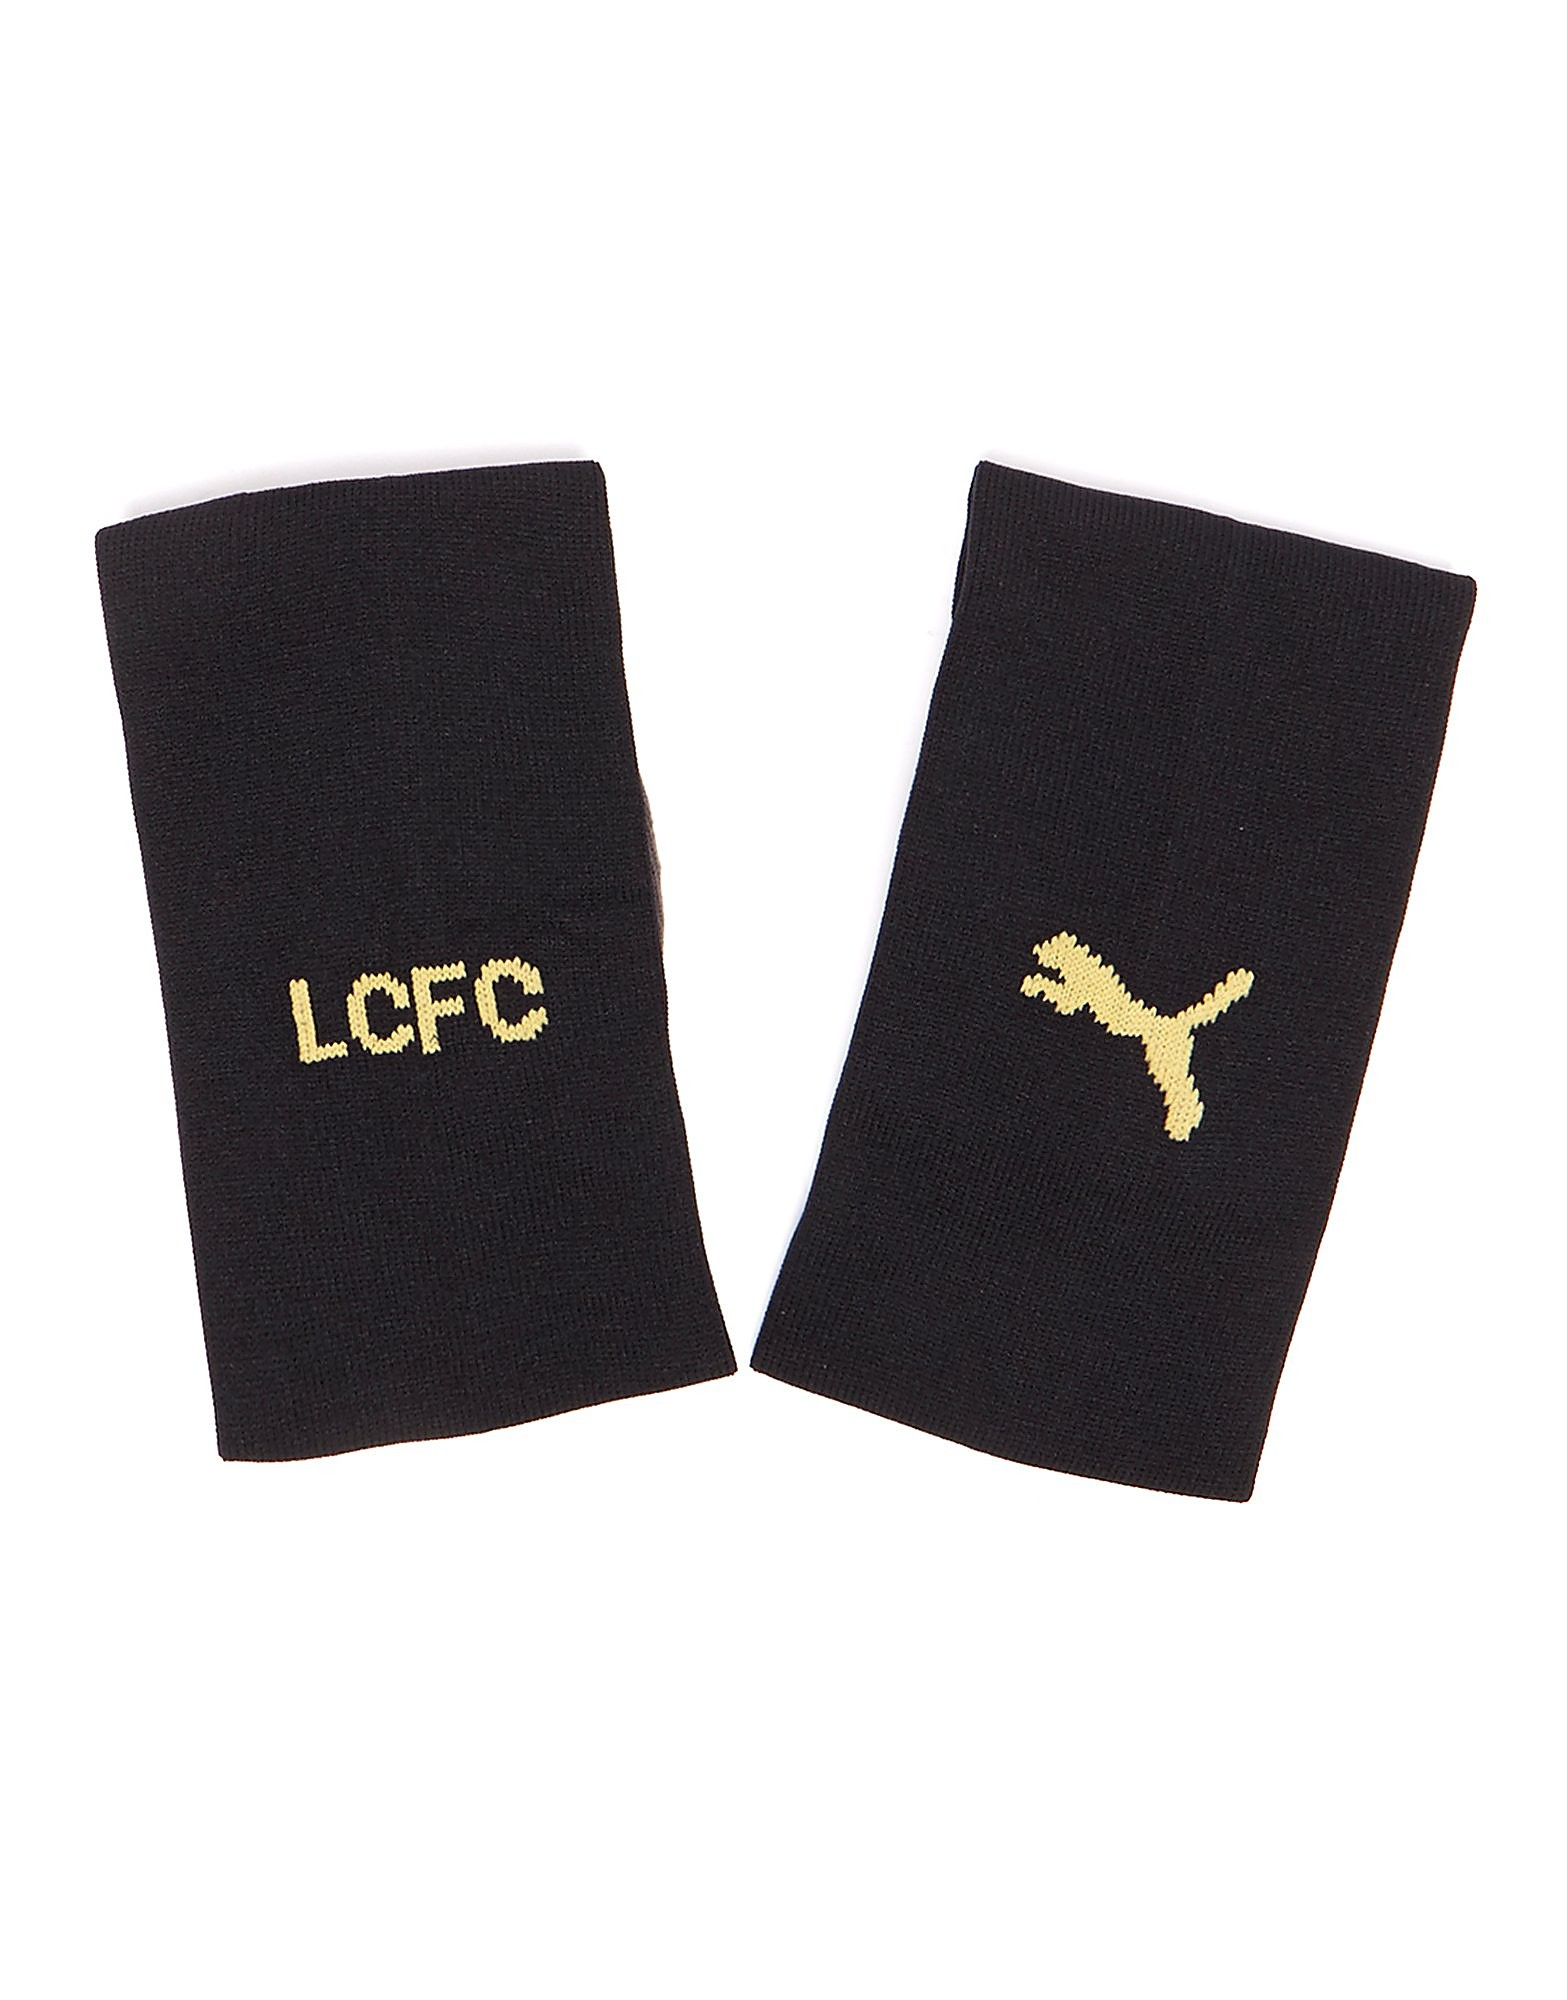 PUMA Leicester City FC 2017/18 Away Socks